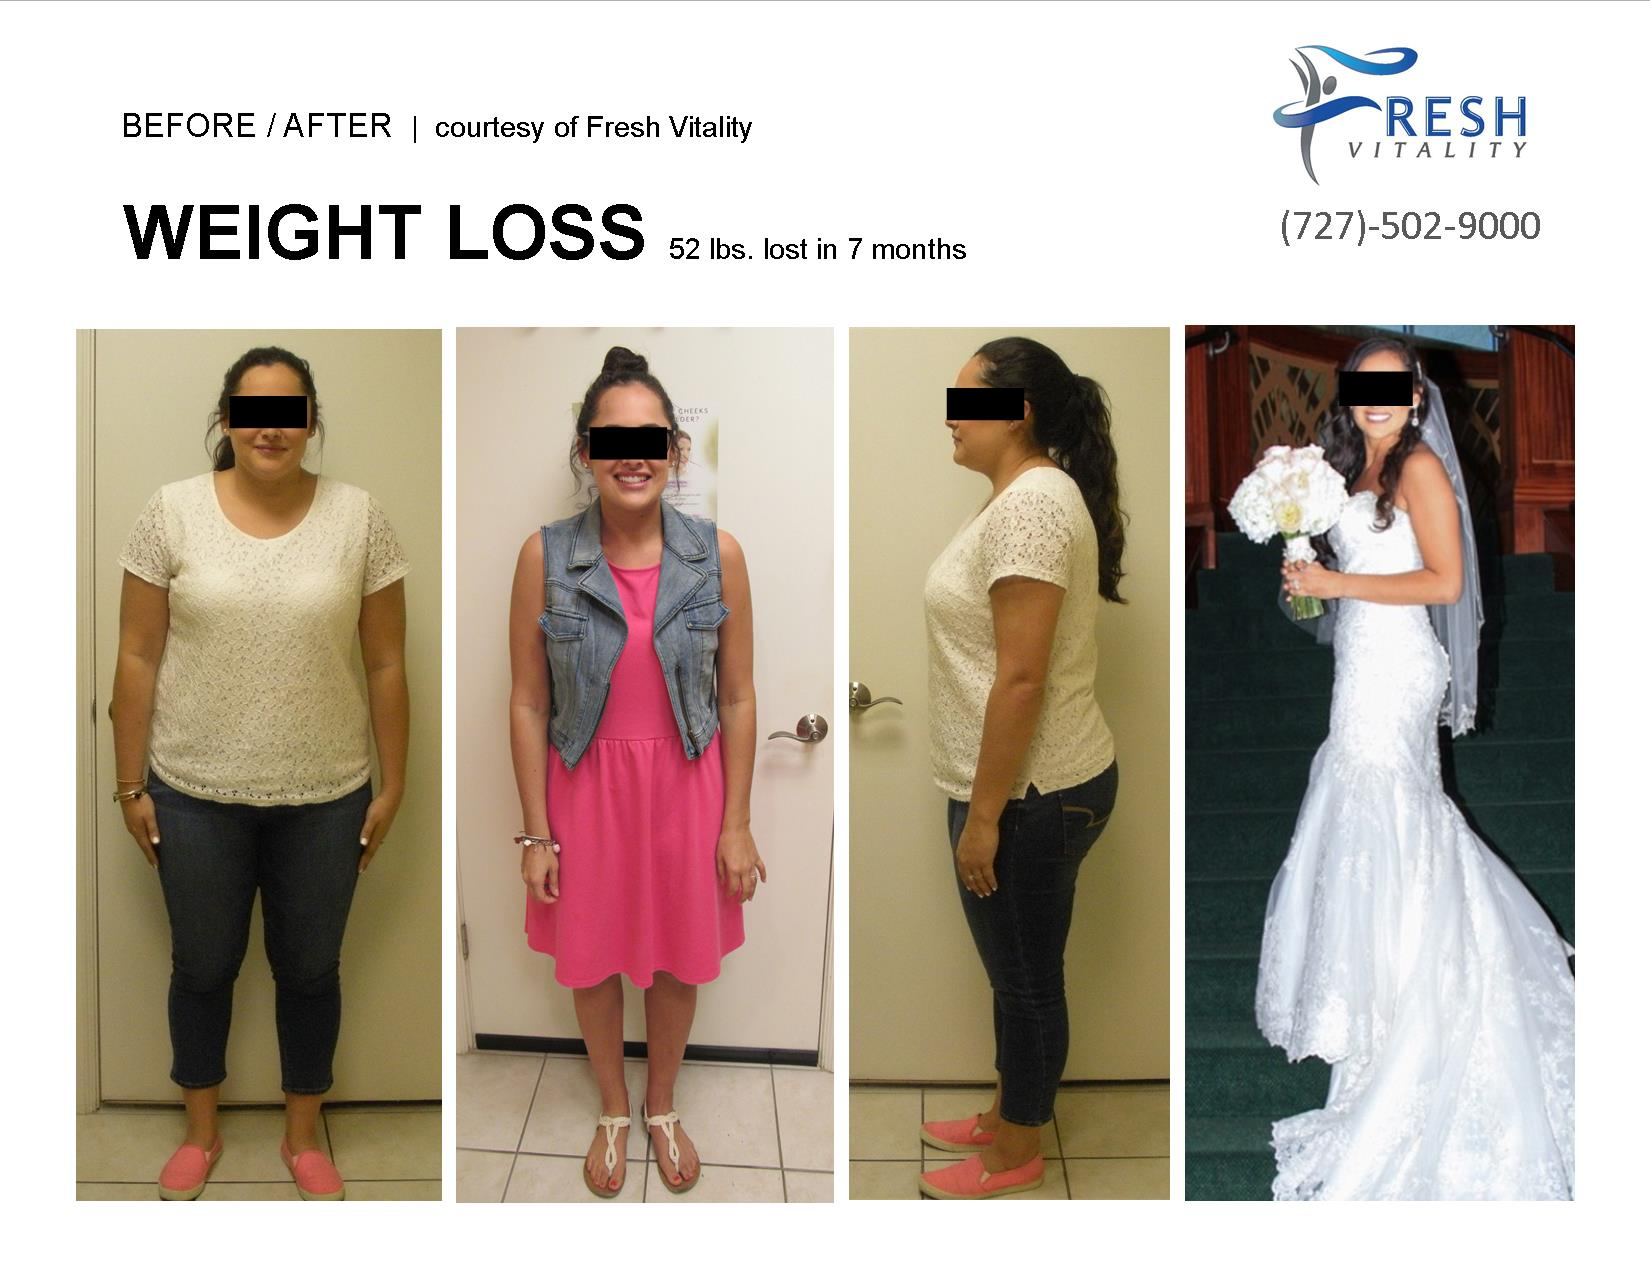 Medical Weight Loss St Petersburg Before After 52 pounds